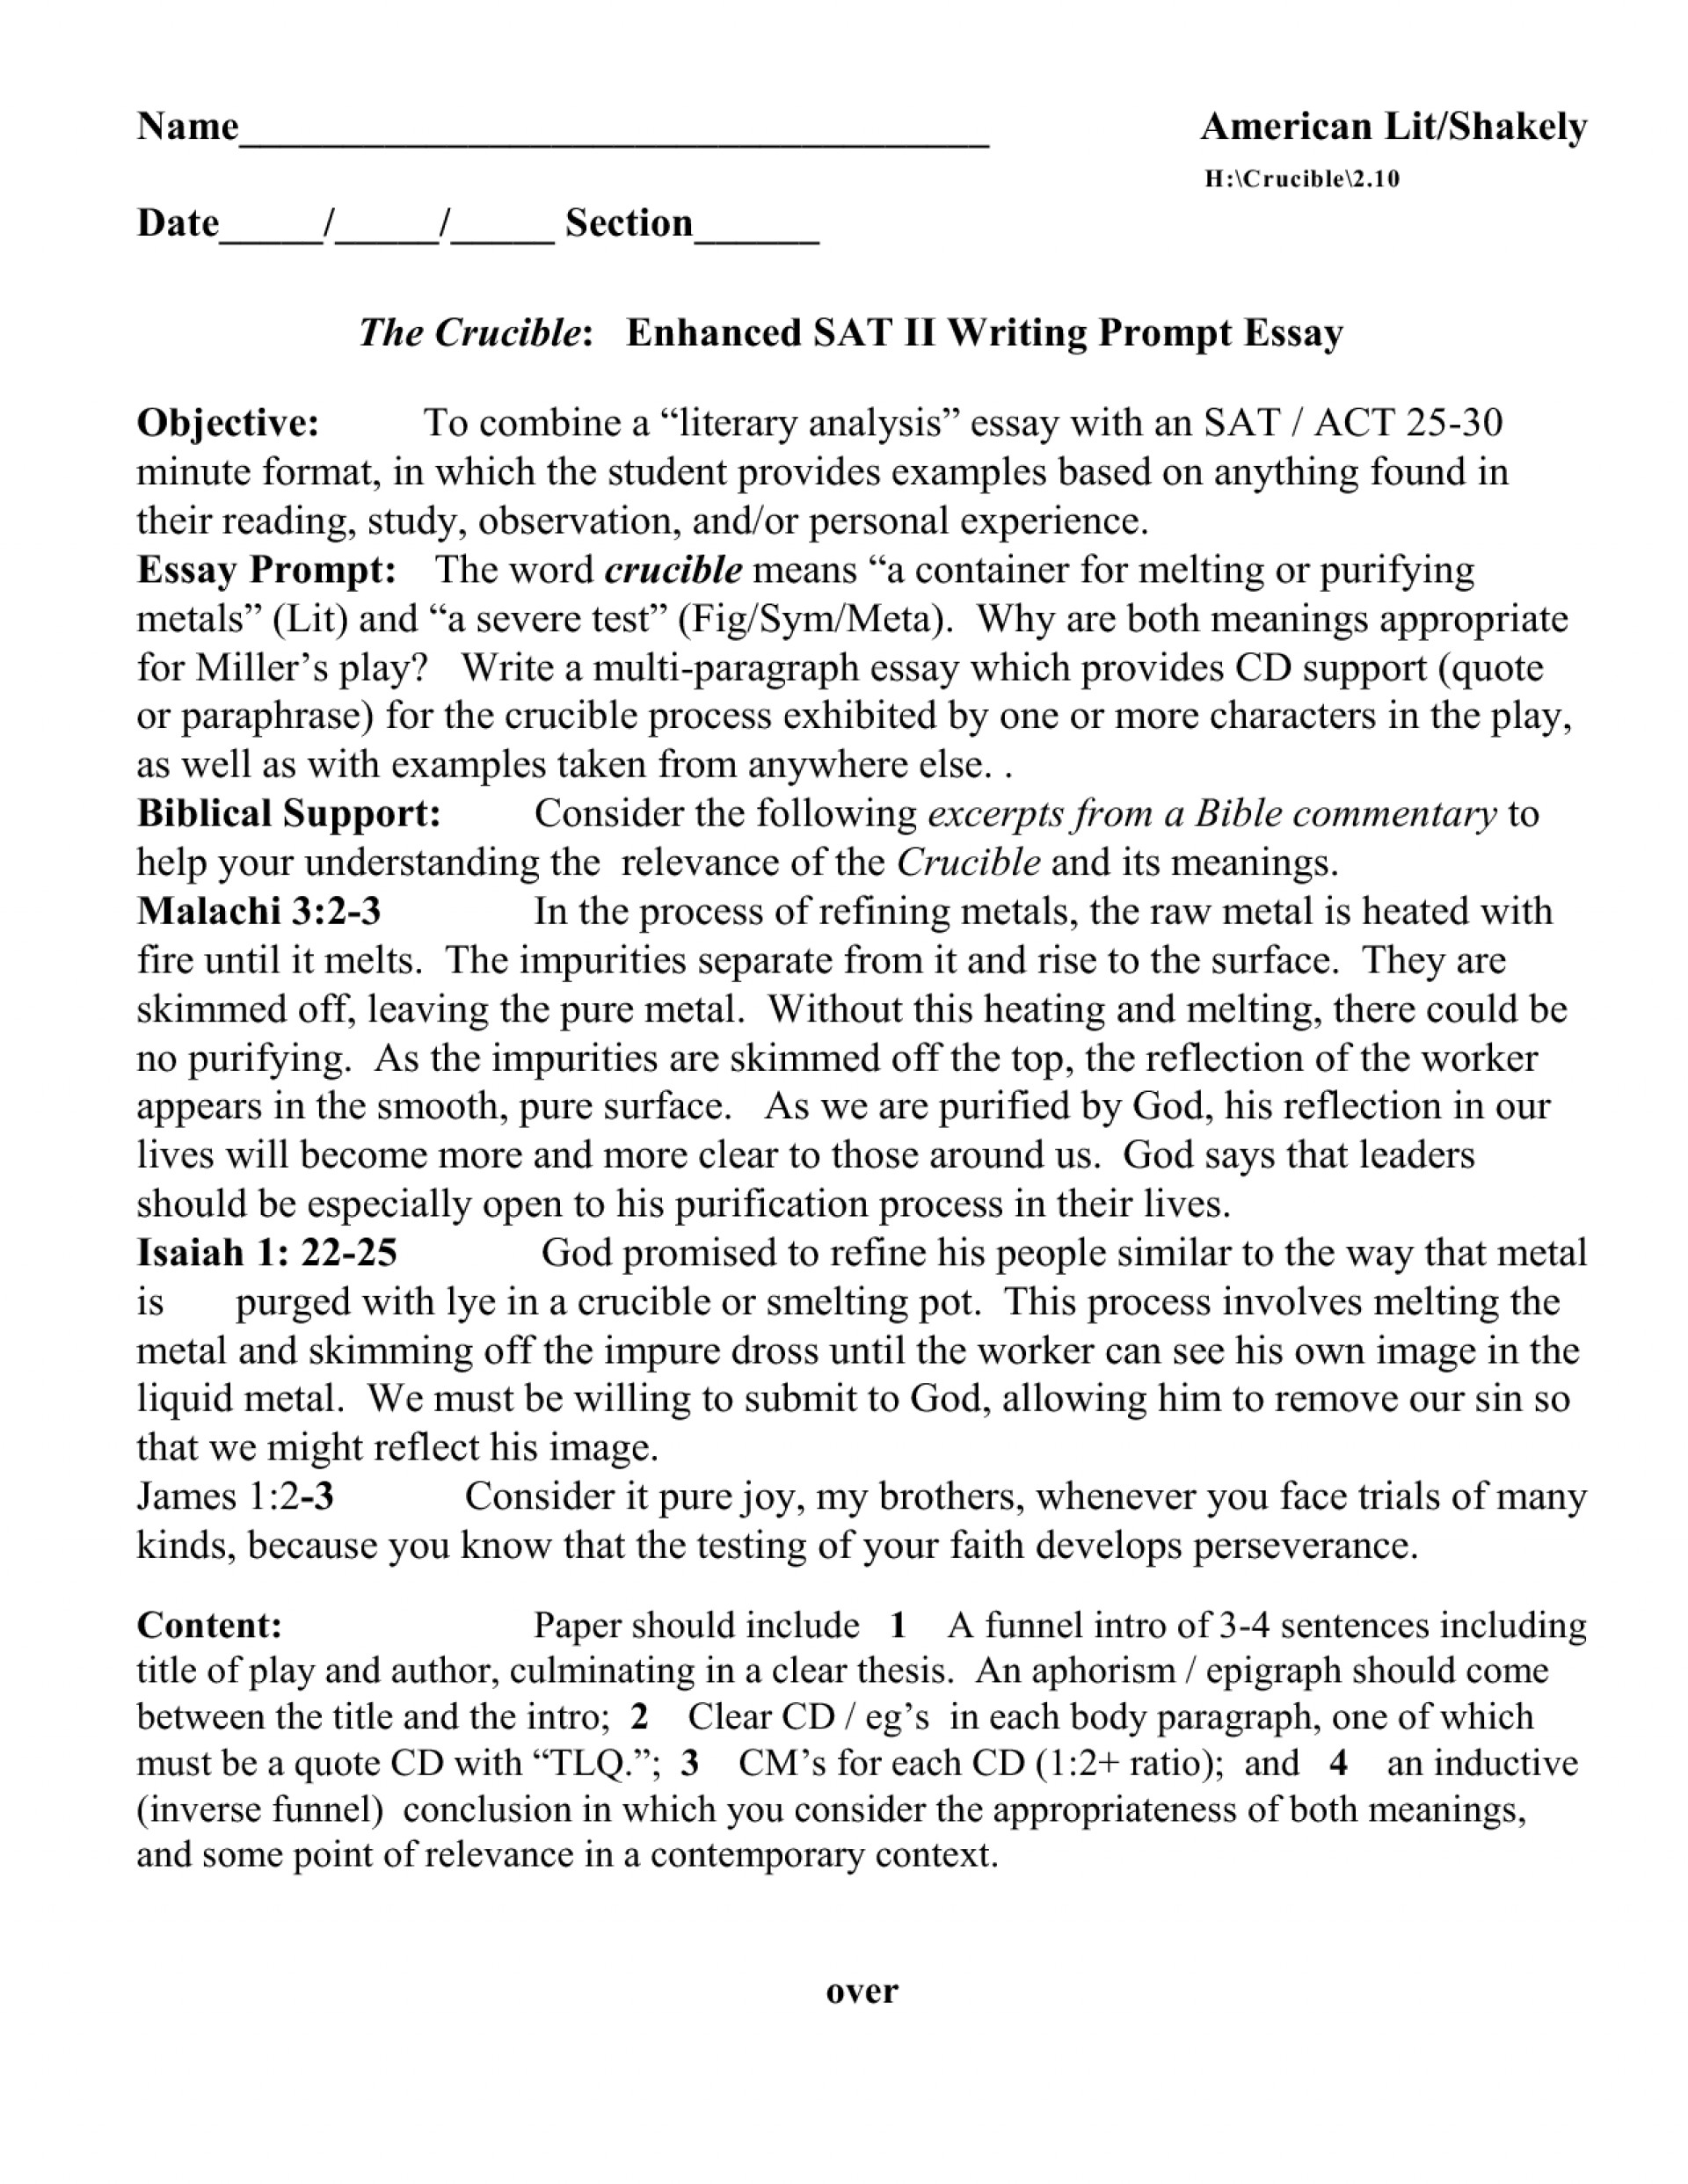 006 Sat Essay Practice Example Quotes Quotesgram Is There An On The L Exceptional Test 8 4 1920